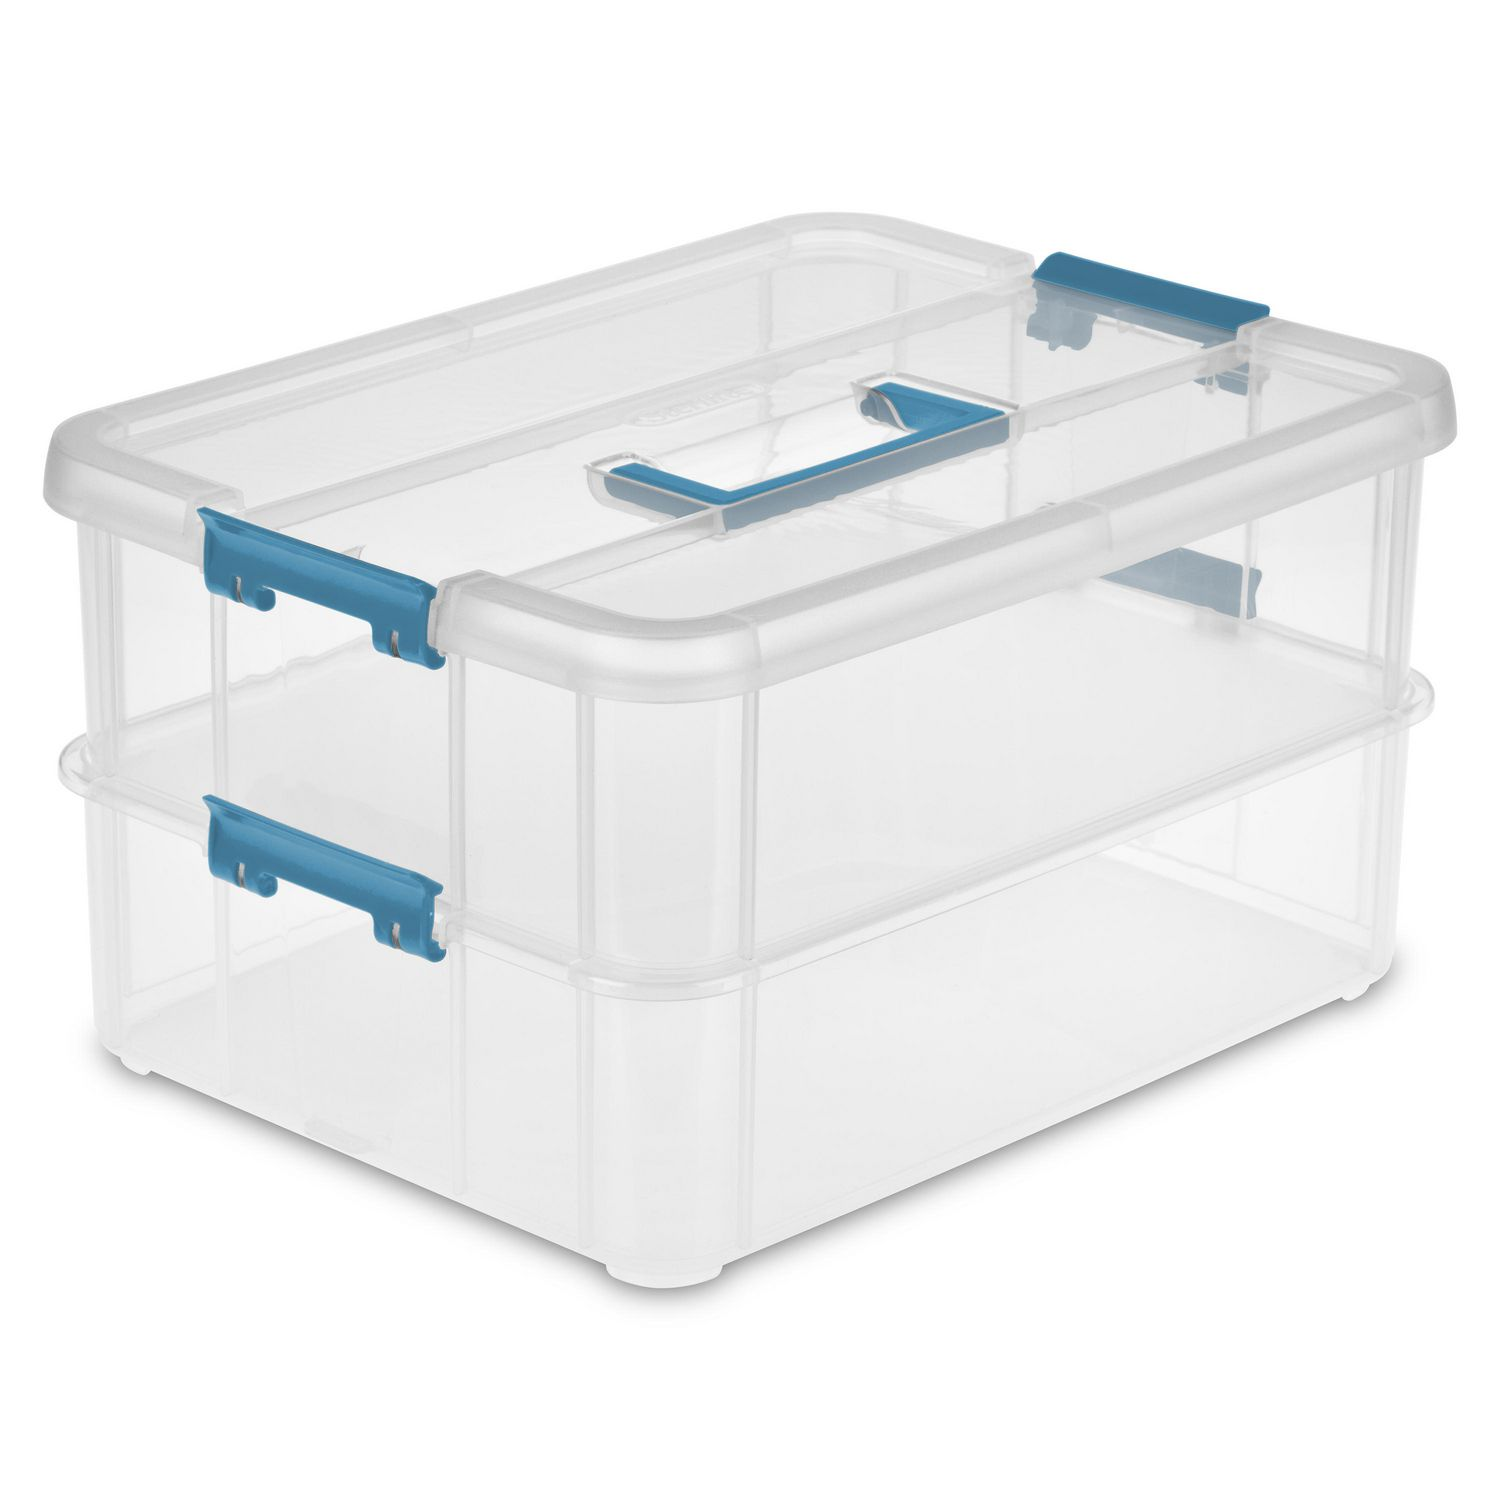 small open bernsport black tubs plano storage tub